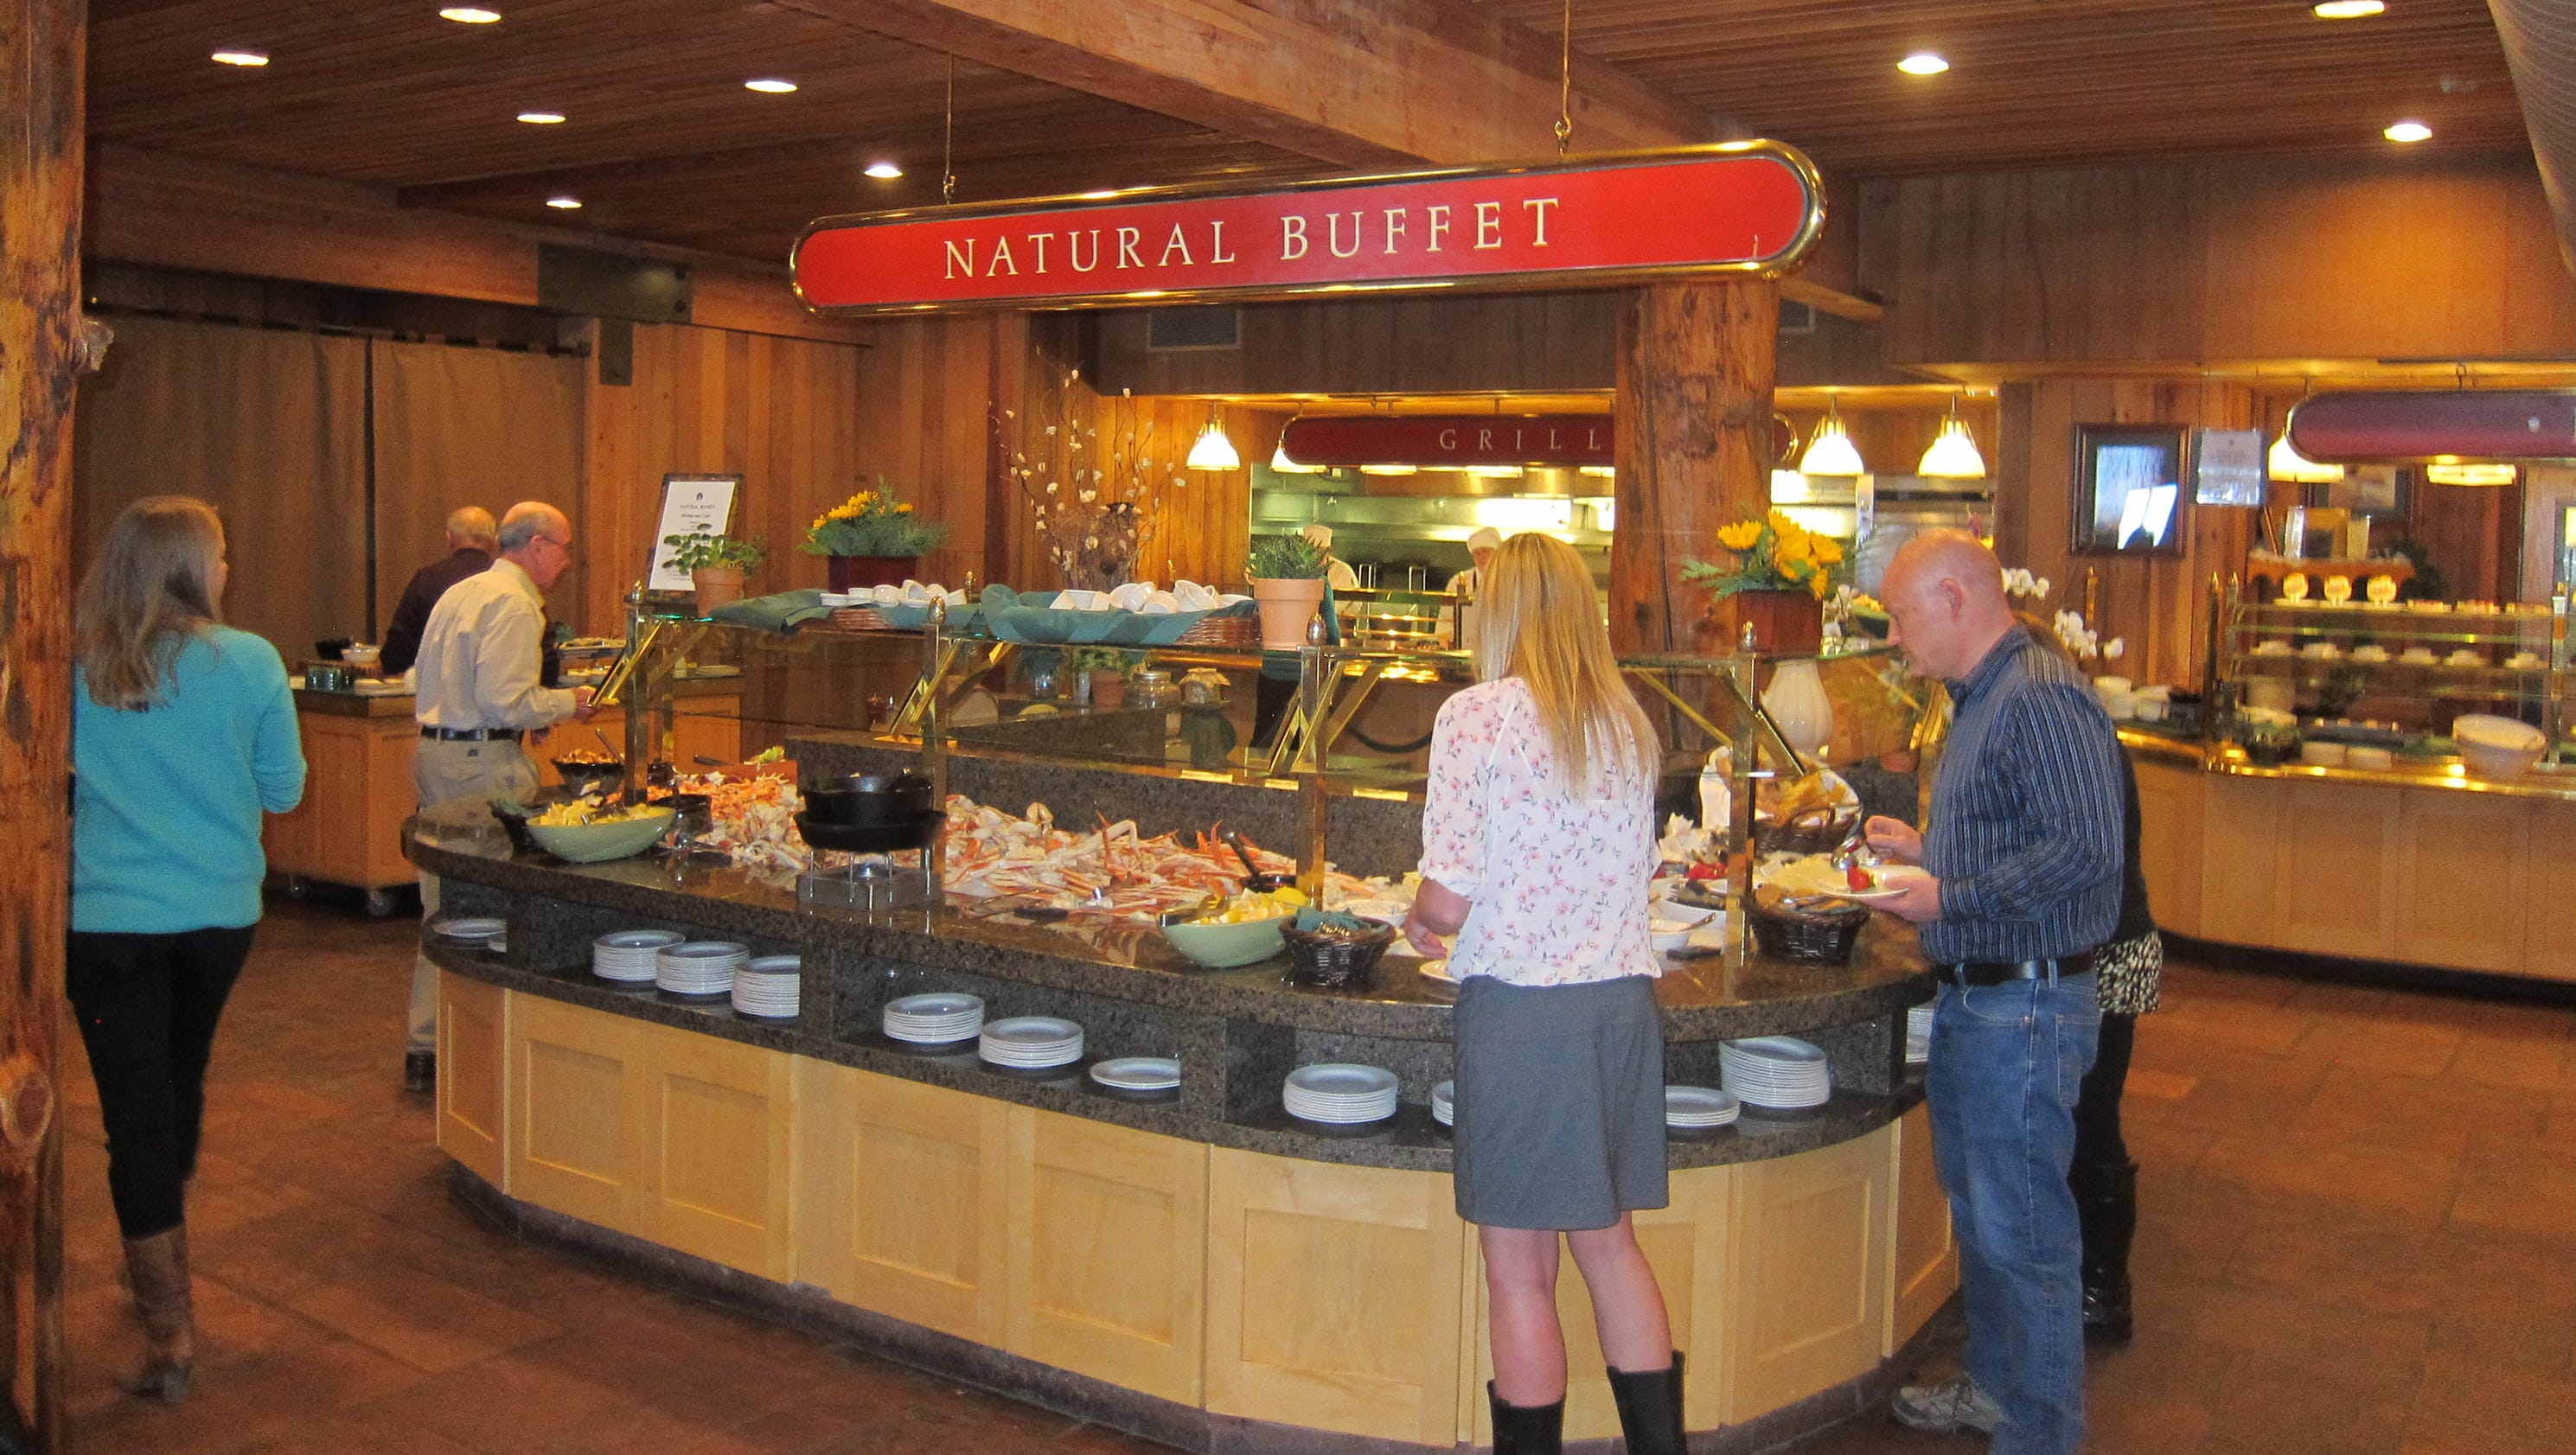 How Much Is Seafood Buffet In Park City